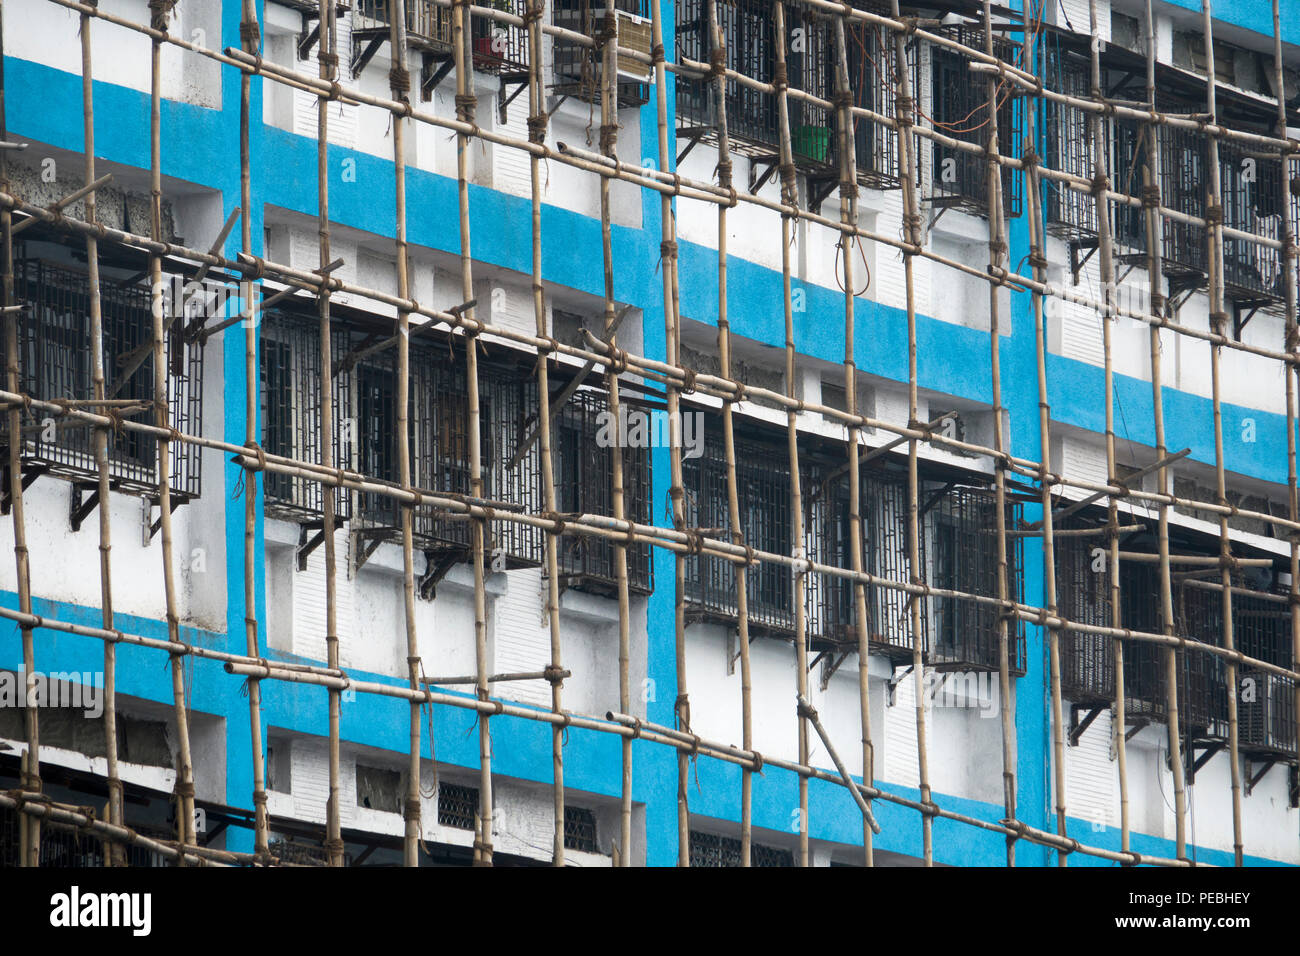 Bamboo scaffolding on exterior of old building in Mumbai, India - Stock Image